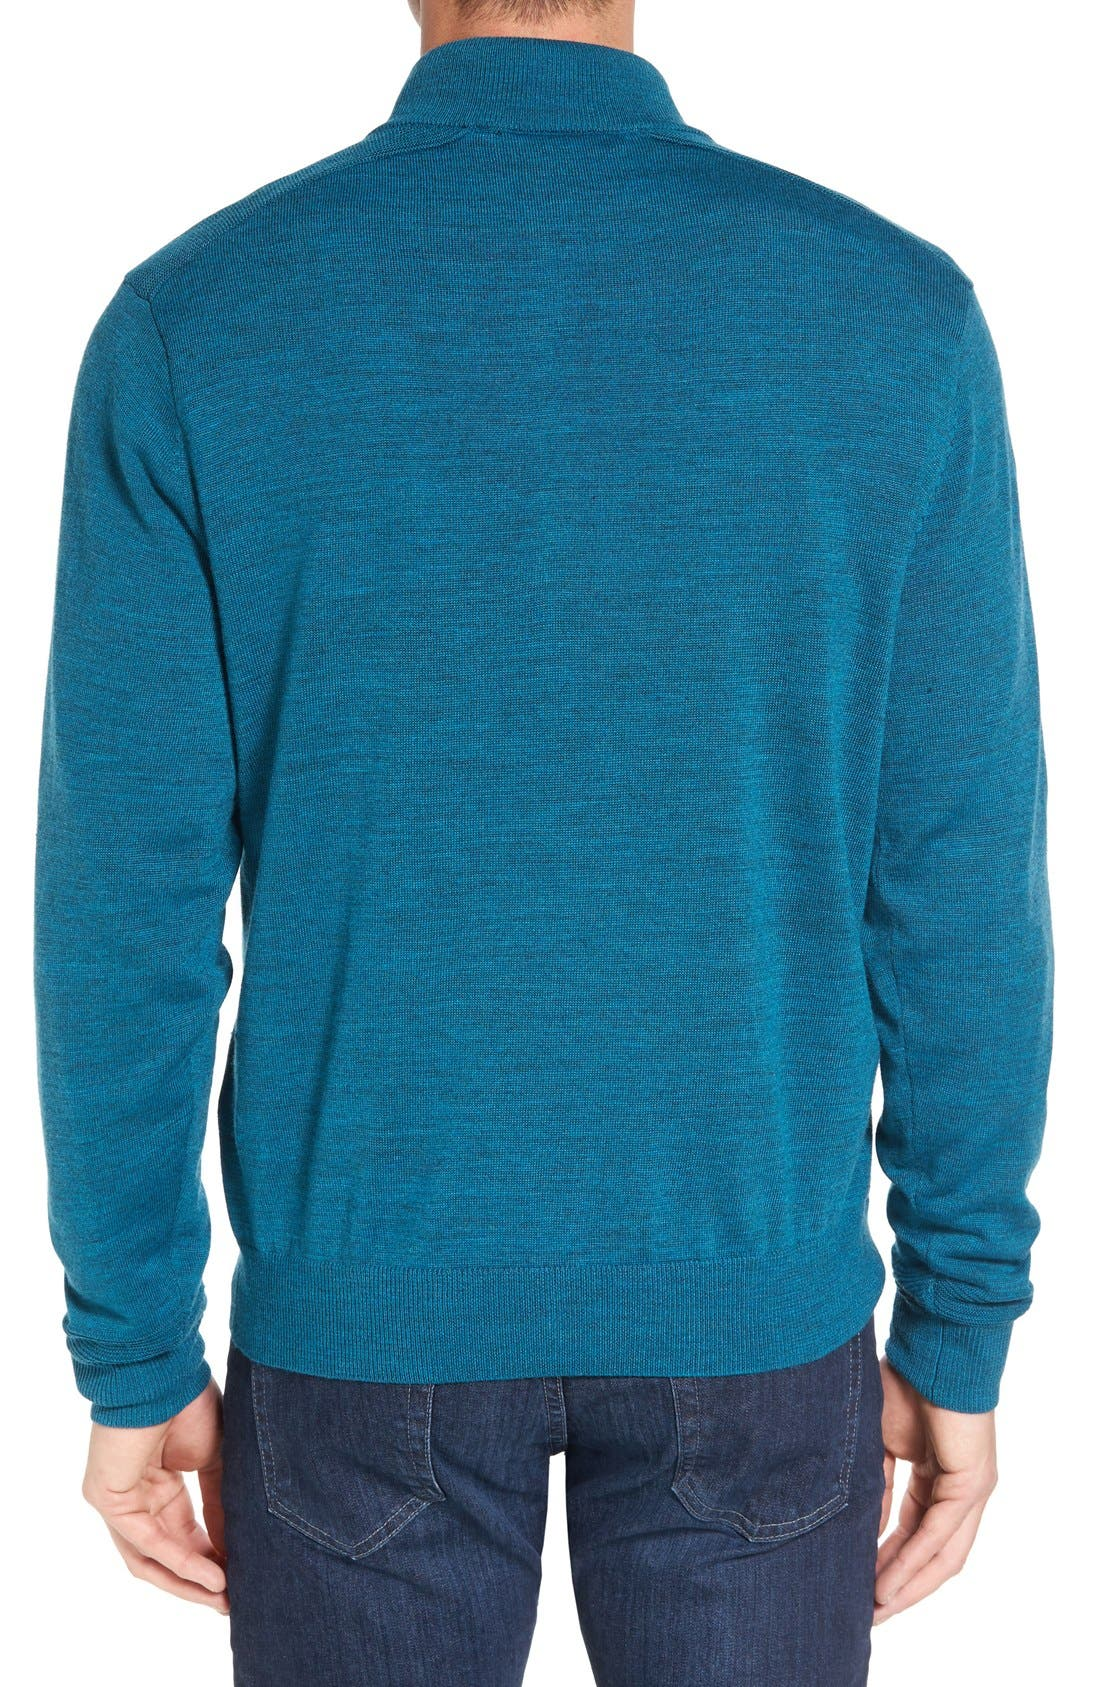 Douglas Quarter Zip Wool Blend Sweater,                             Alternate thumbnail 2, color,                             Mykonos Heather